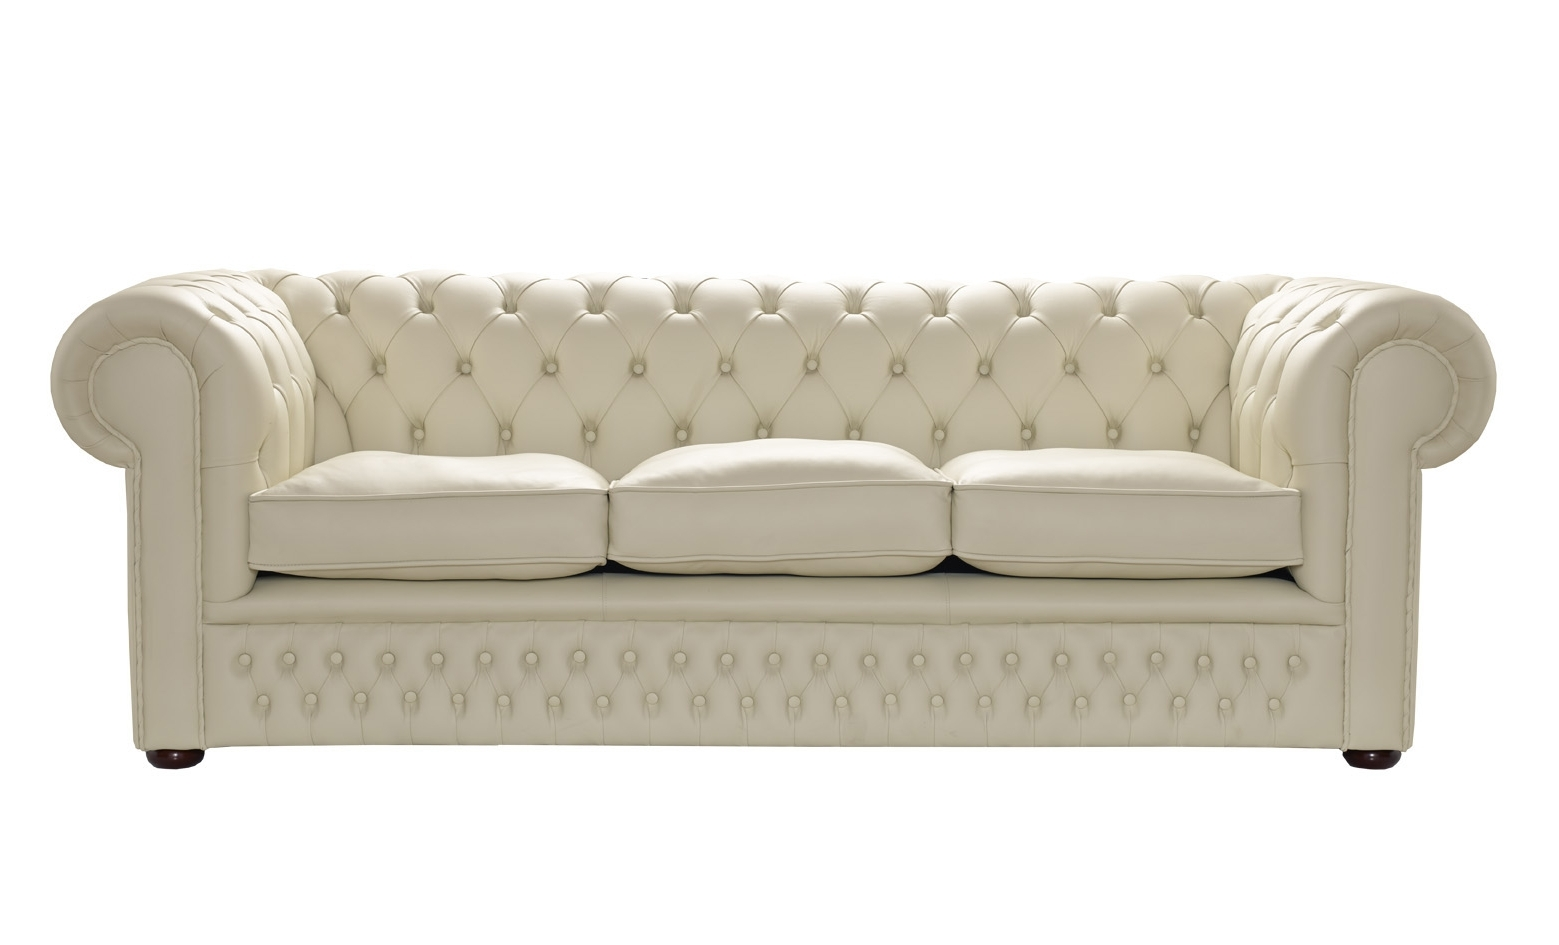 Great Cream Colored Sofa 84 With Additional Sofa Room Ideas With Regarding Most Recently Released Cream Colored Sofas (View 14 of 20)